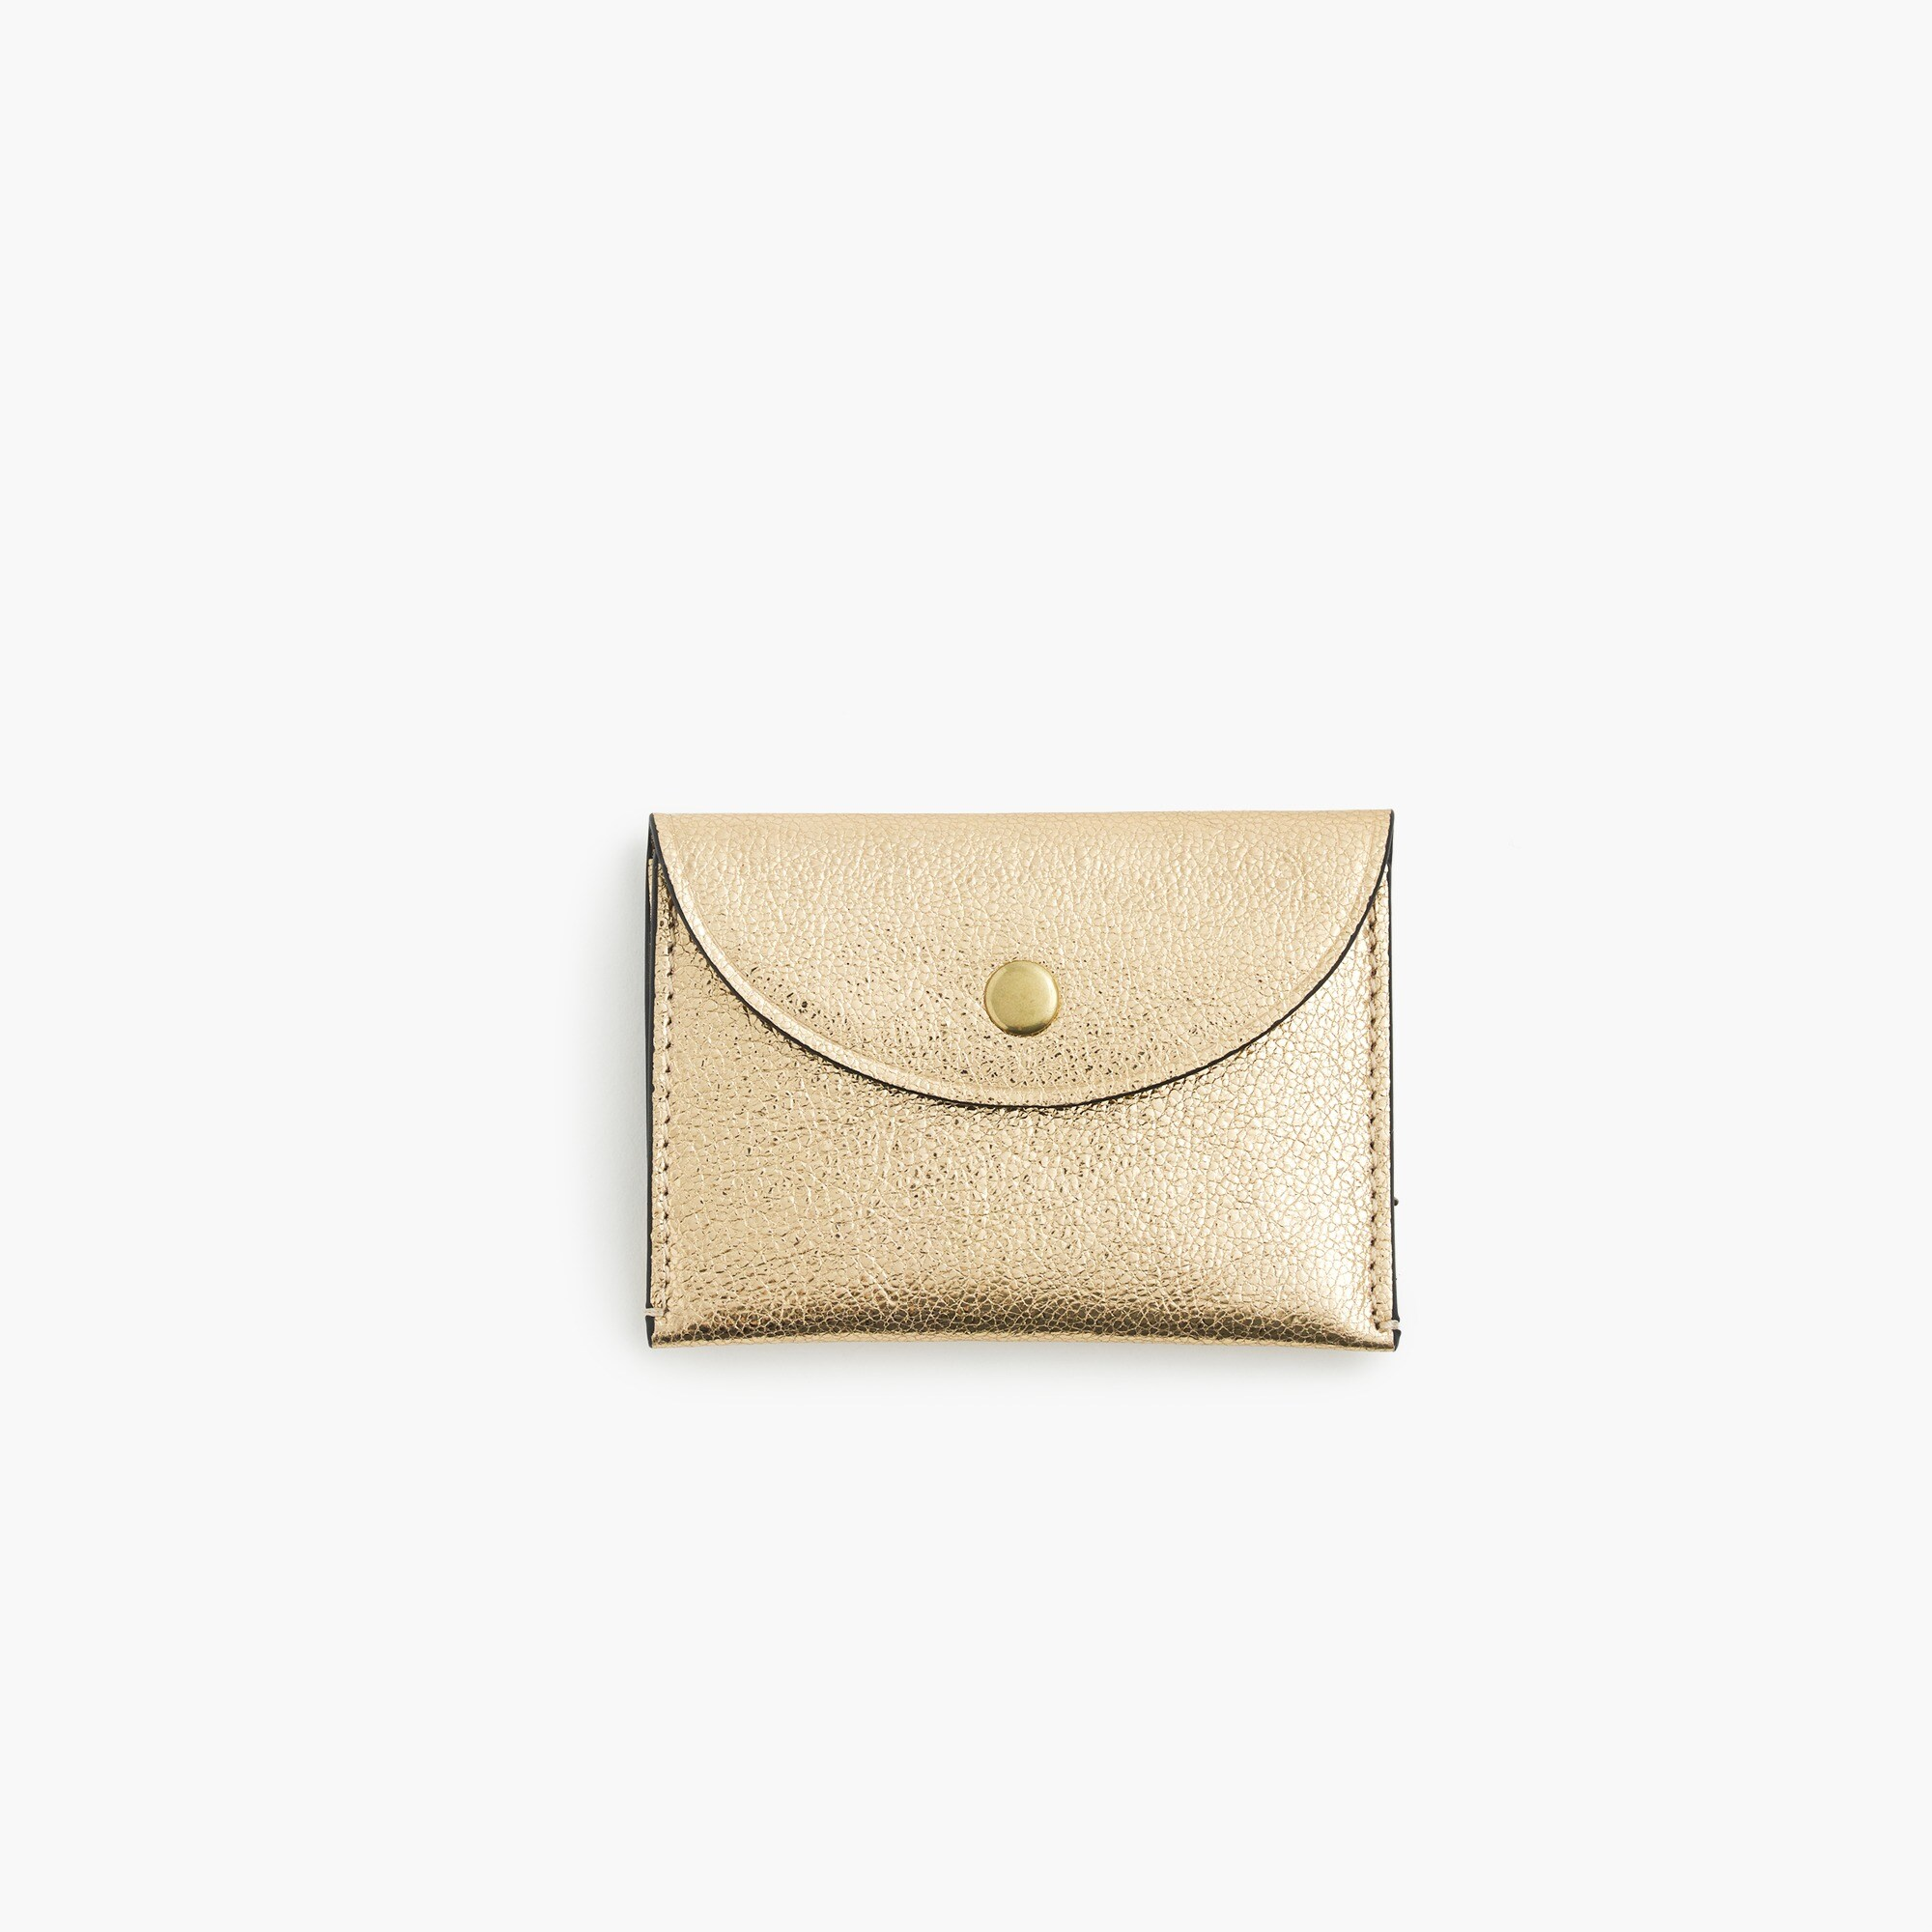 Image 1 for Coin purse in metallic Italian leather